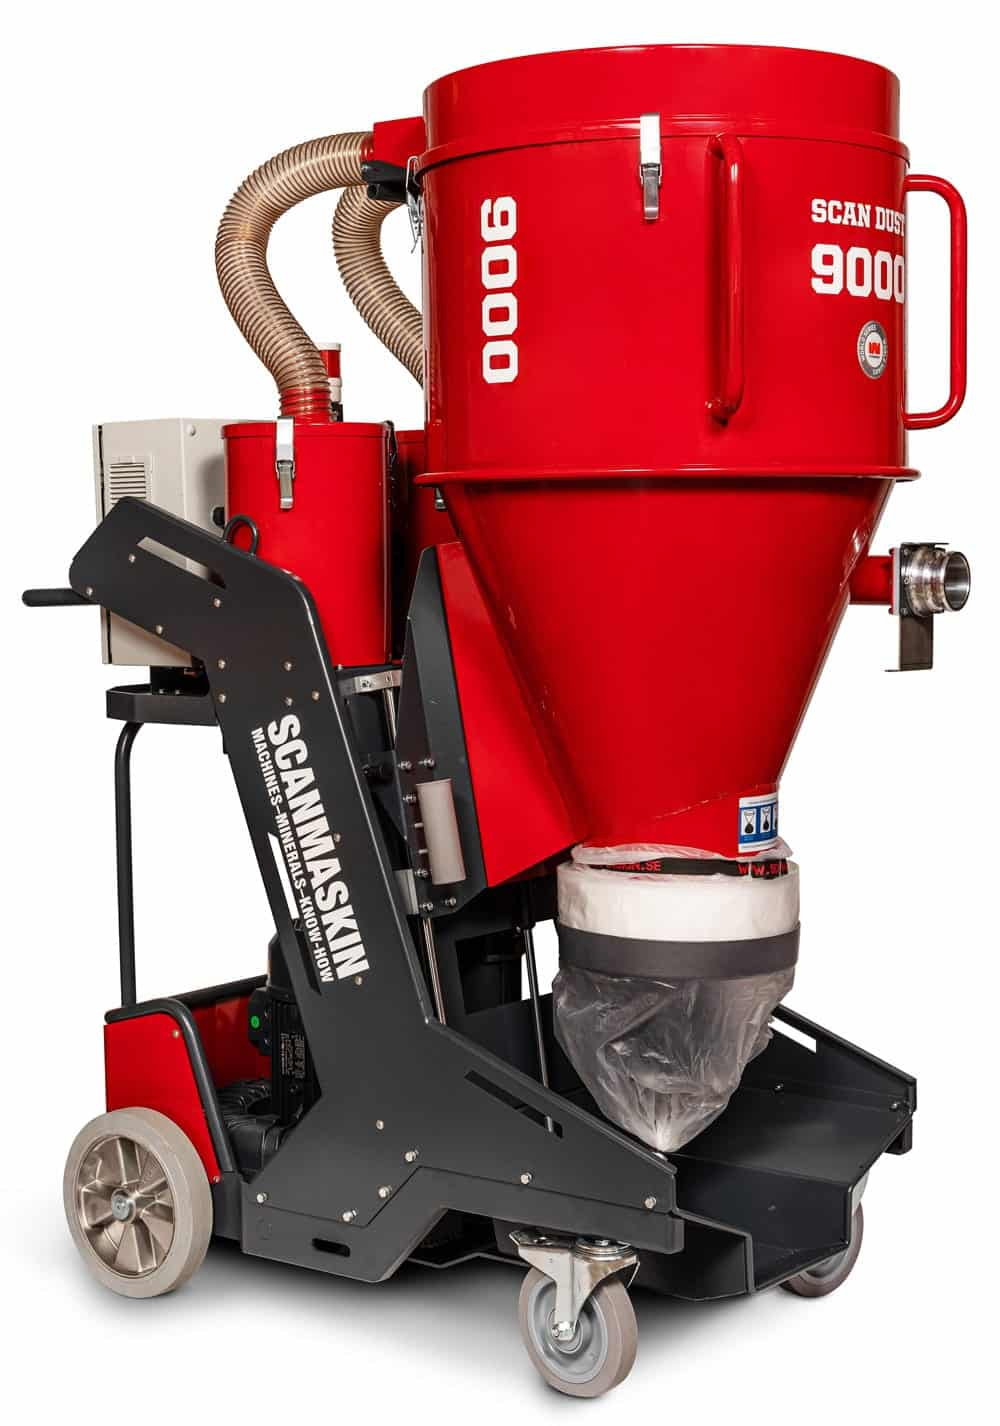 Front a Right Side  400-480 V 3~ Electric Industrial Dust Collector 9000 by Scanmaskin from Turning Point Supply